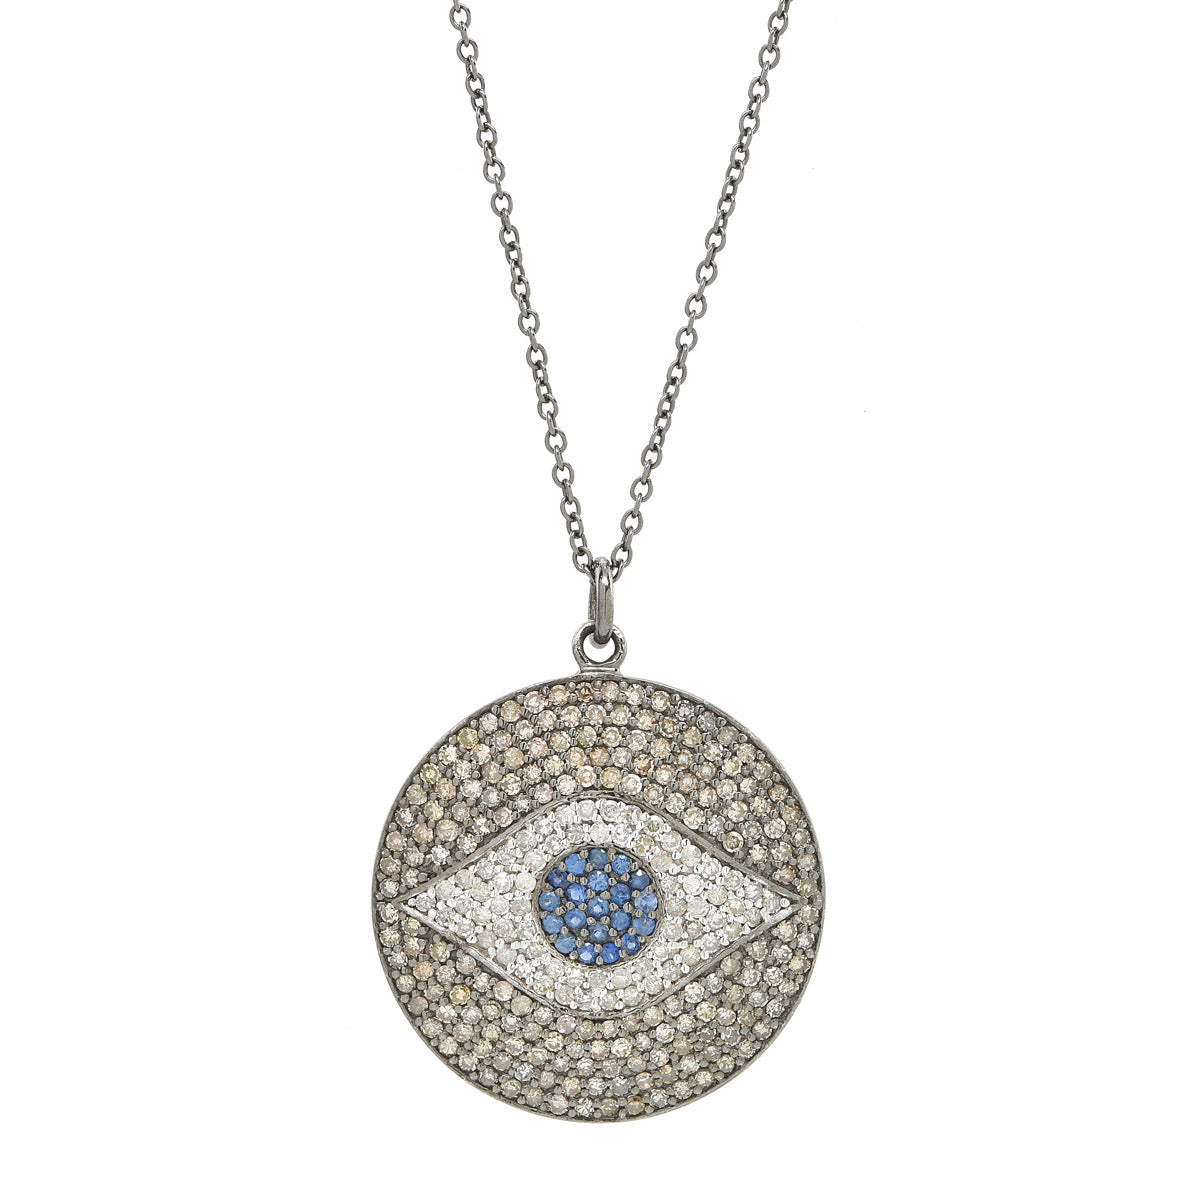 sapphire blue diamond necklace pendant large new dilarasaatci evil products disk eye